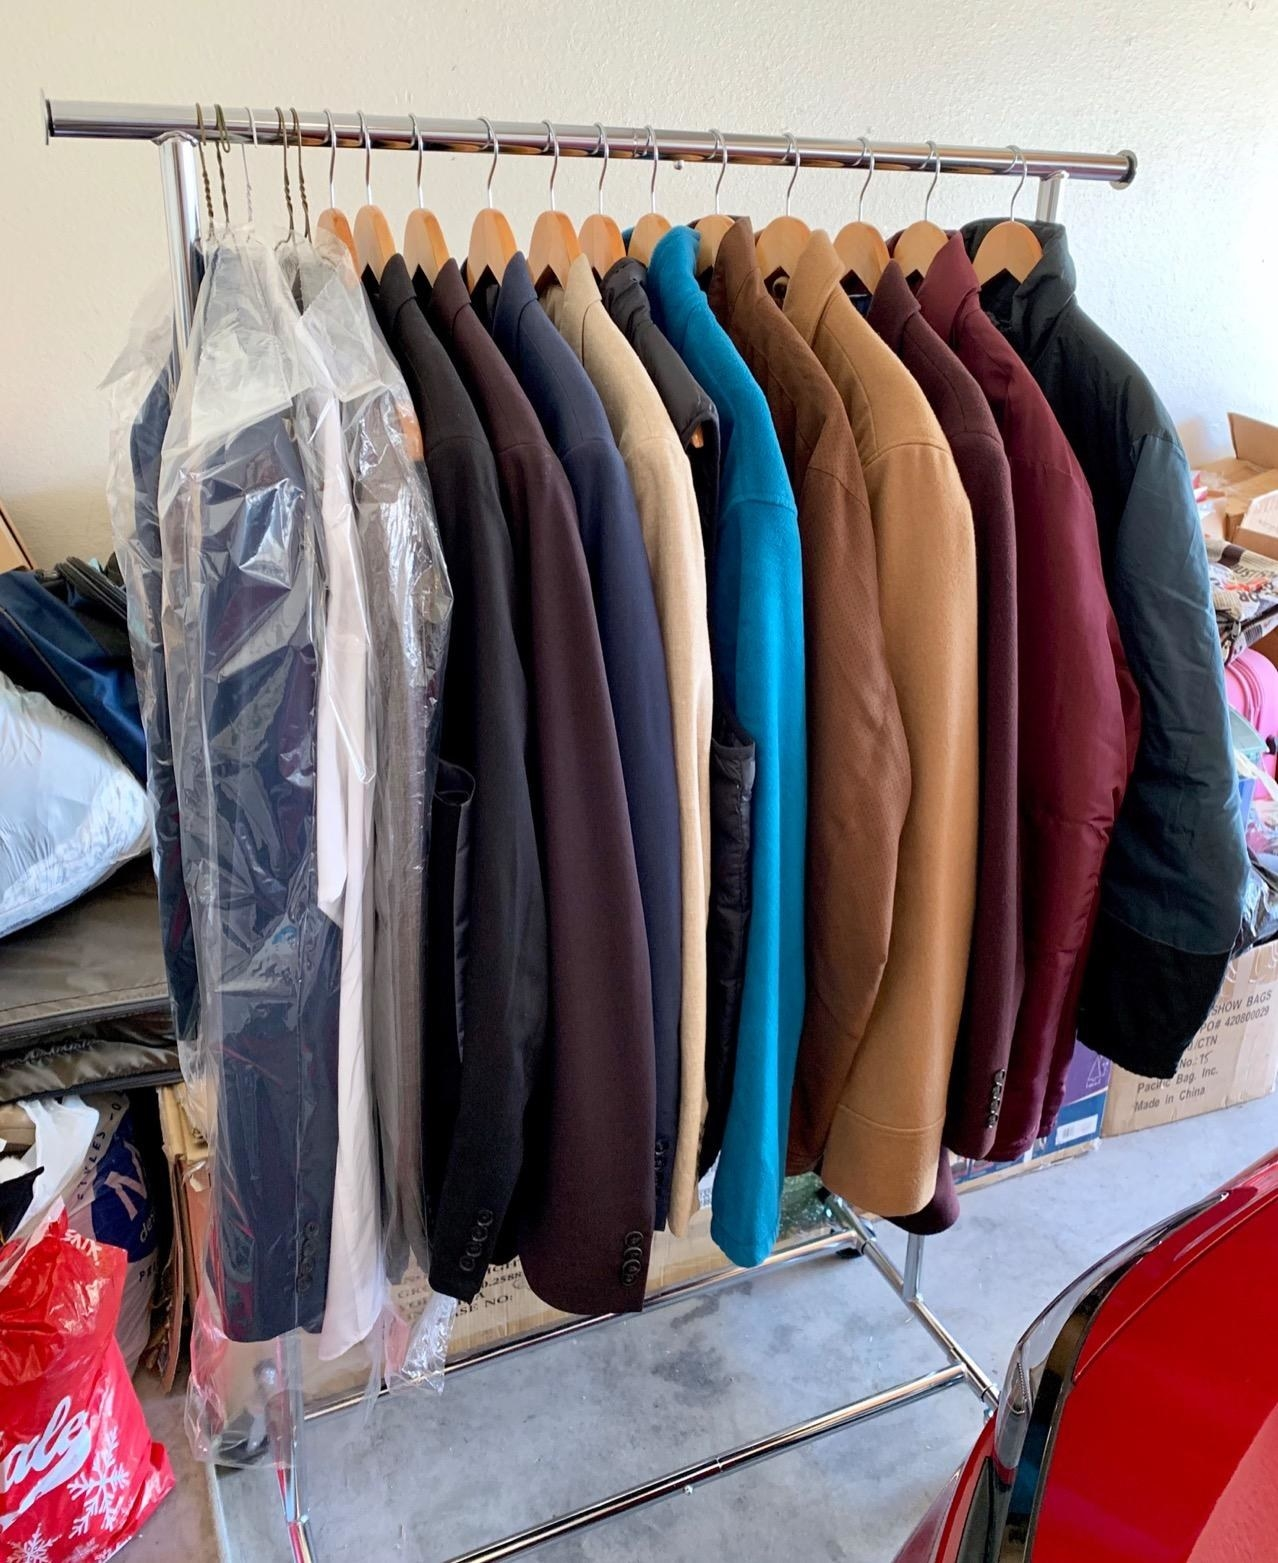 A reviewer's photo of more than a dozen jackets hung from the metallic garment rack